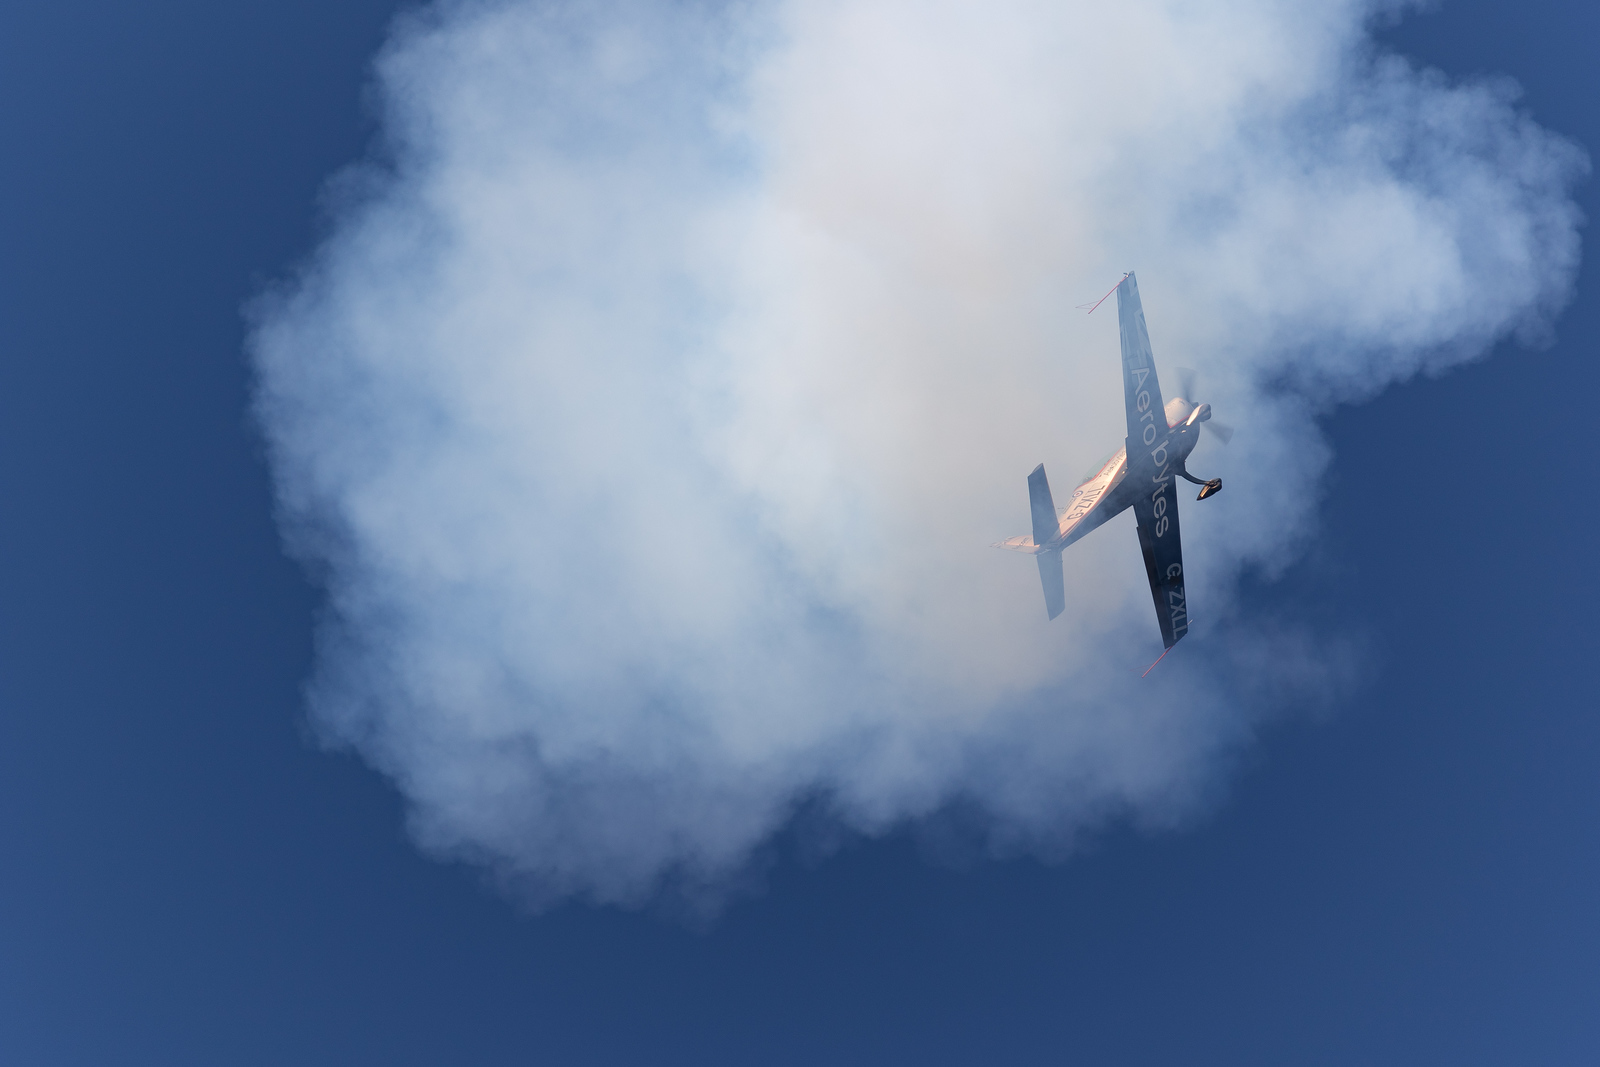 Display Team, Extra, Shoreham 2015, The Blades